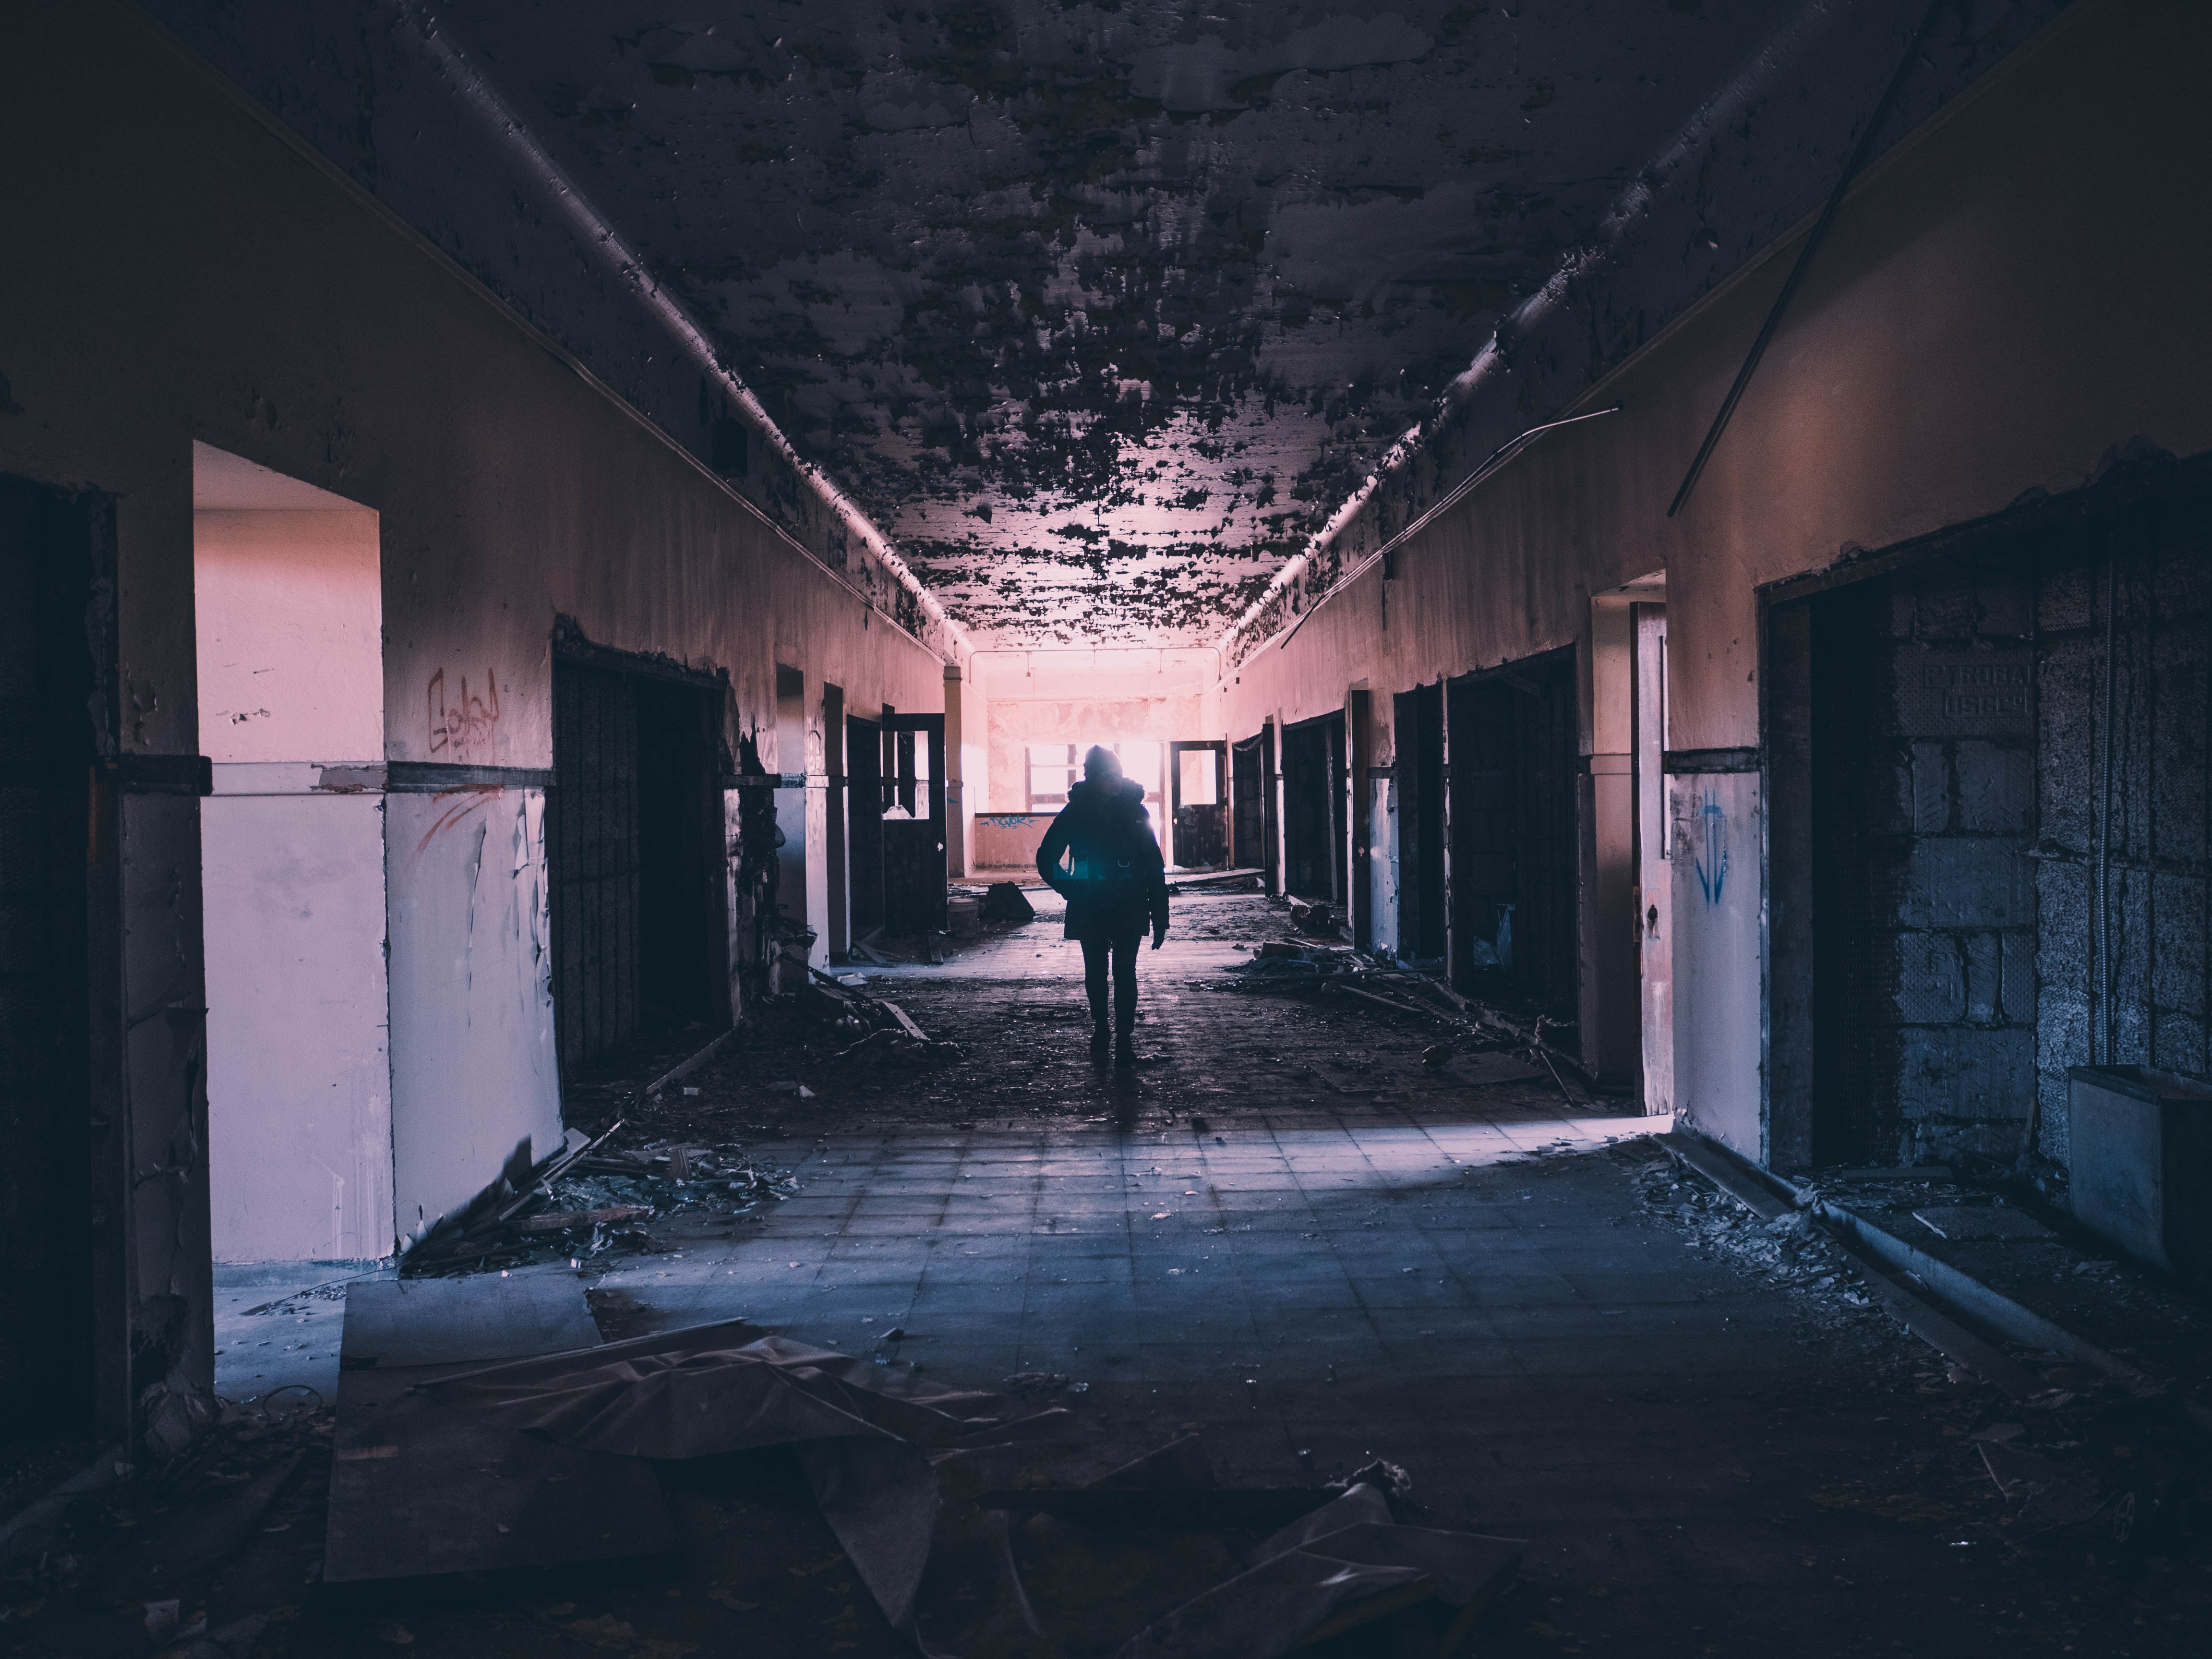 A woman walking down a burnt and damaged hallway.